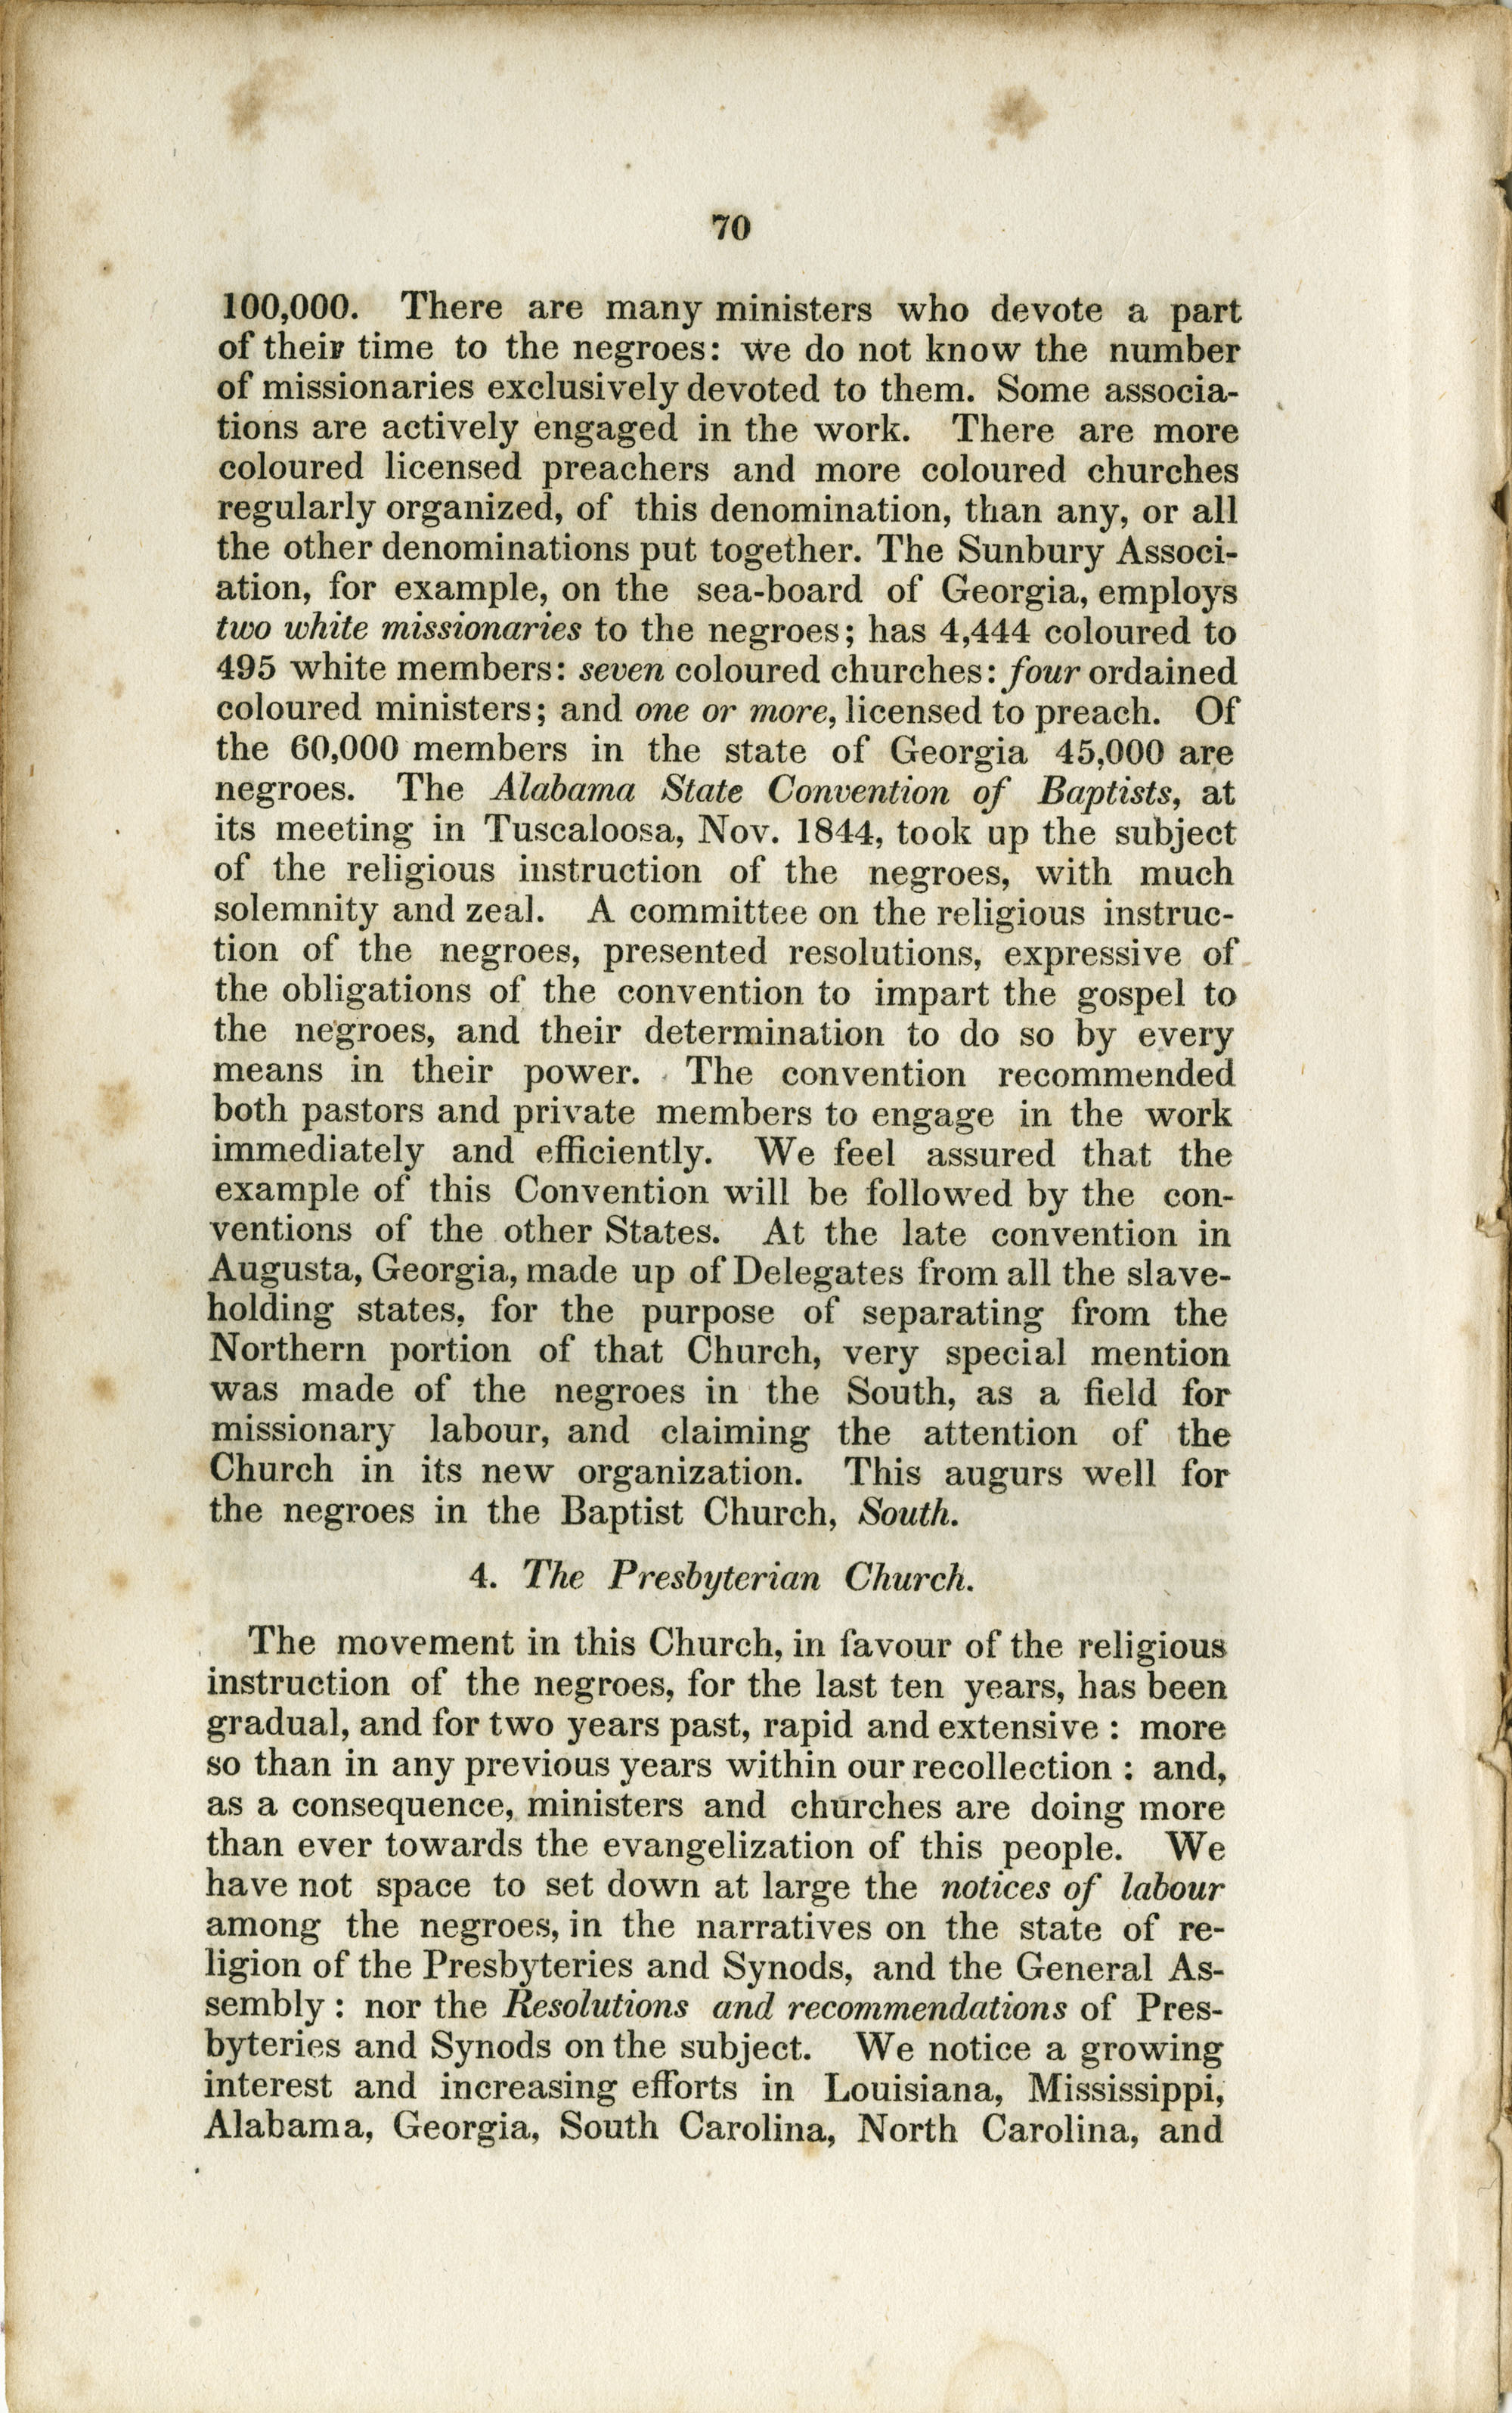 Report of the Committee, Page 70